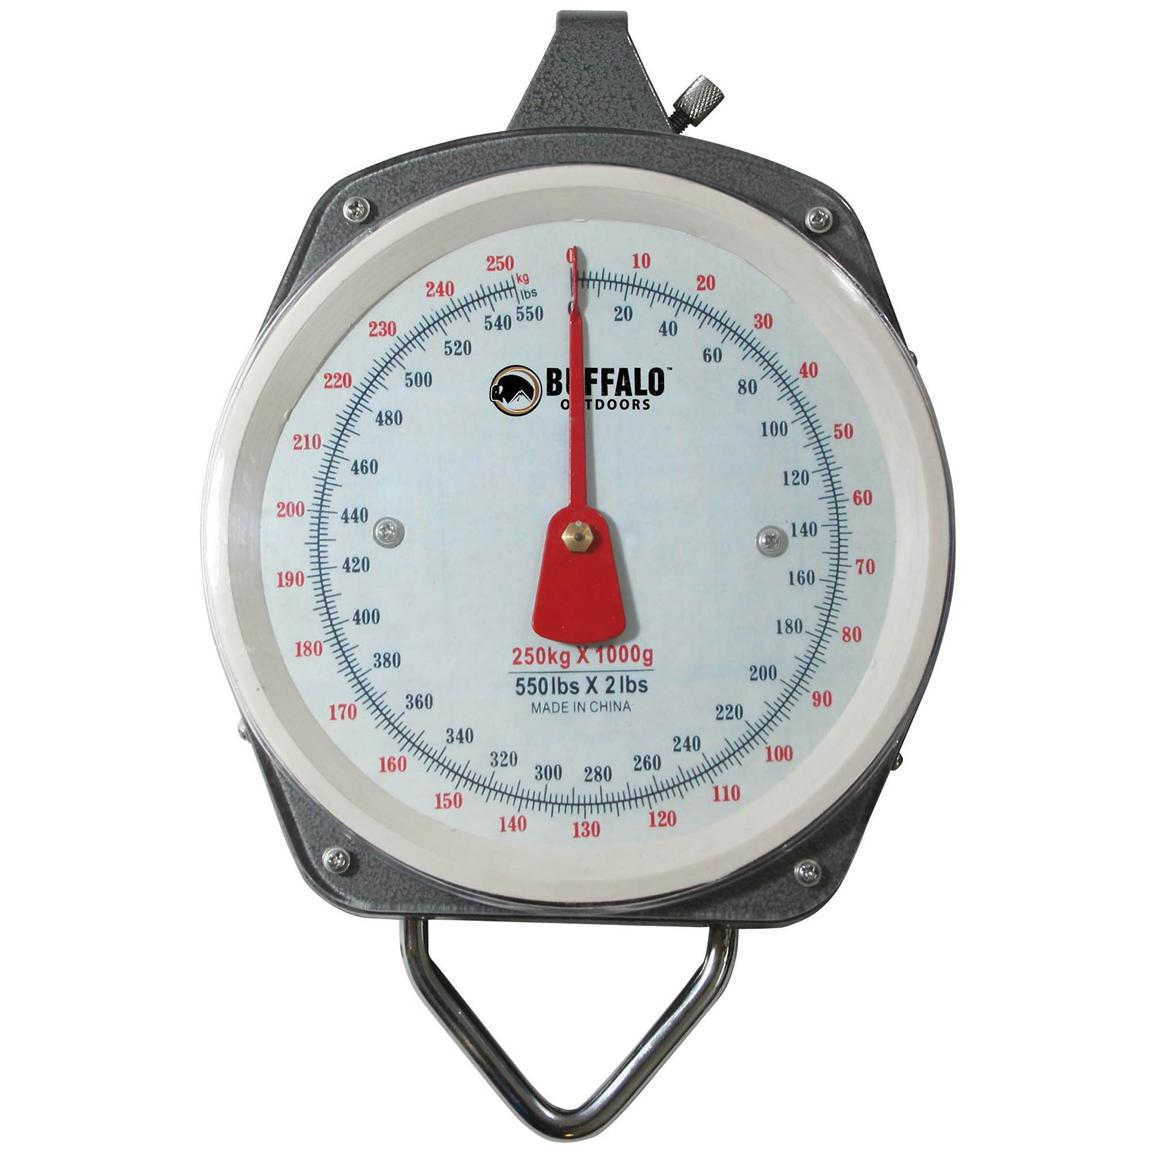 Buffalo Outdoor 550 lbs. Hanging Scale